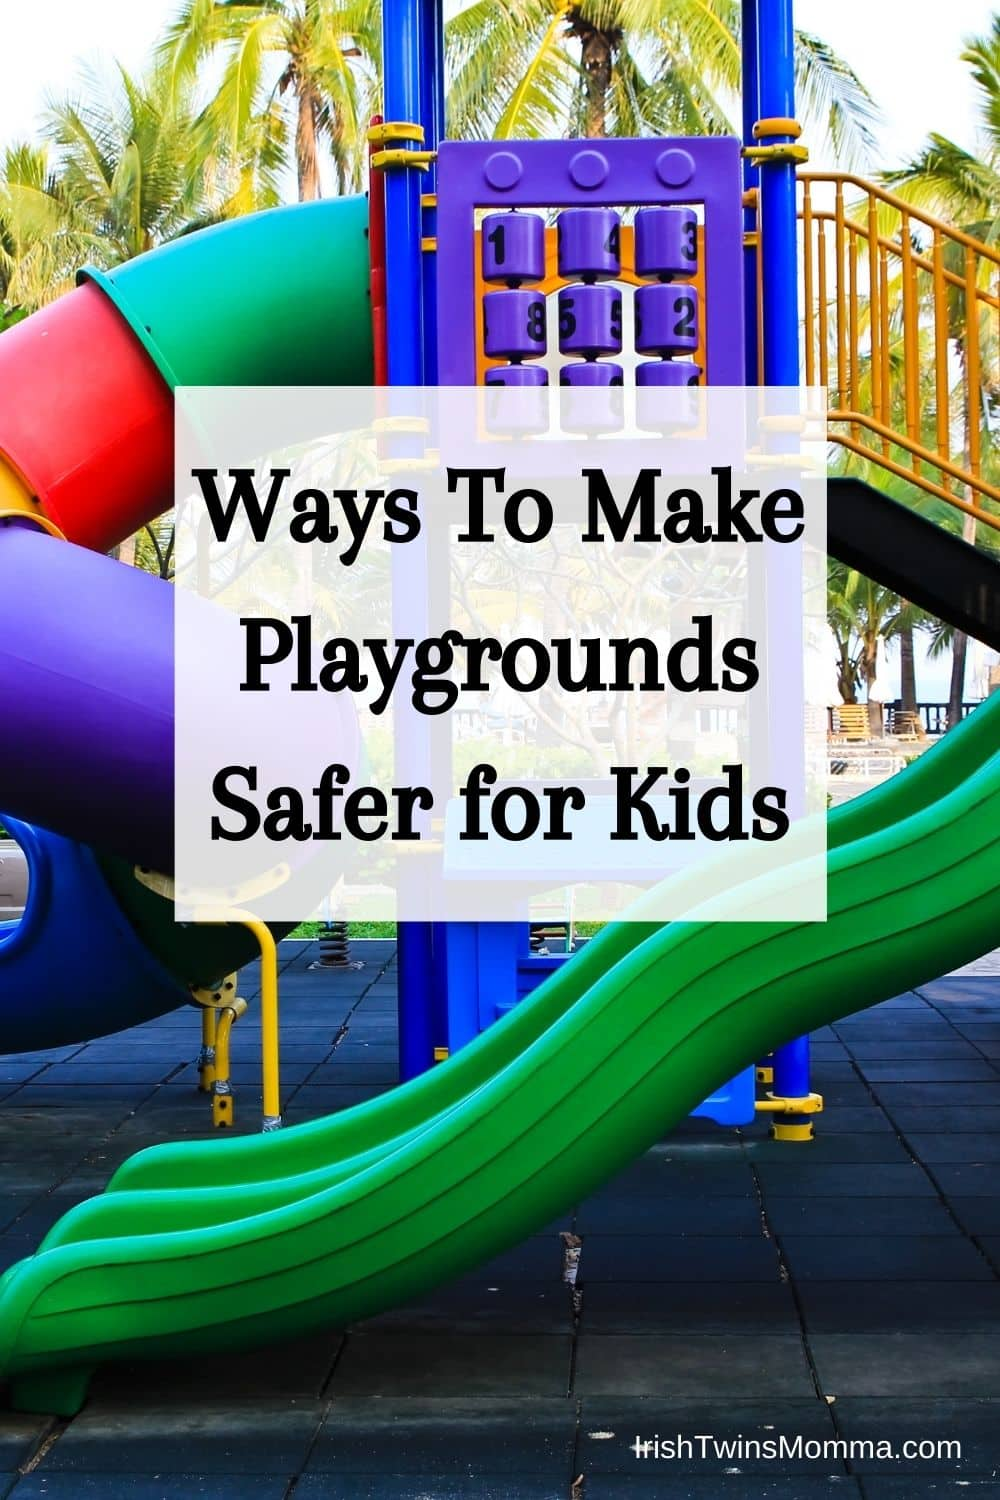 Ways To Make Playgrounds Safer for Kids